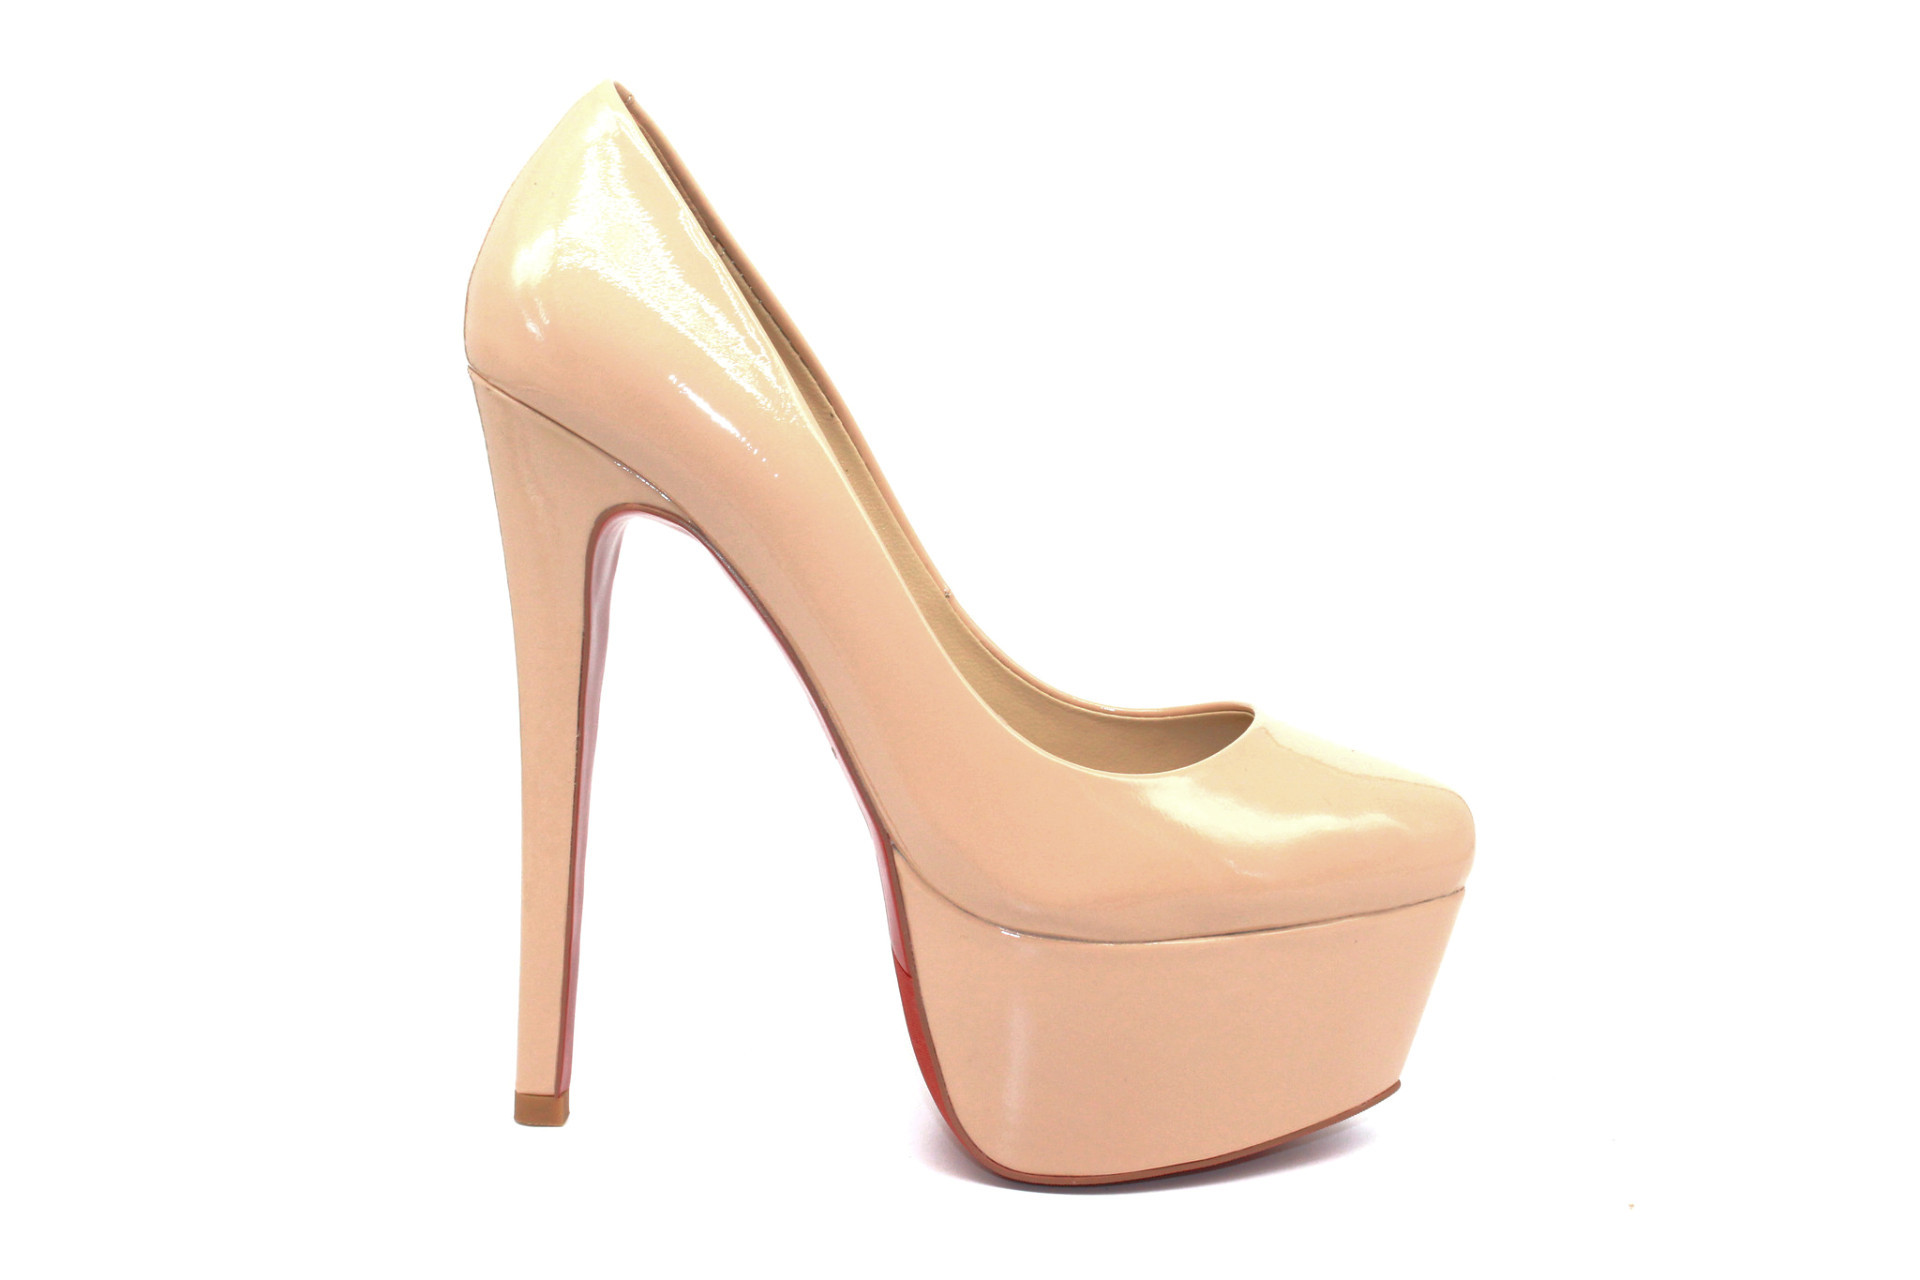 6 Inch Nude Heels 7HqMivh0